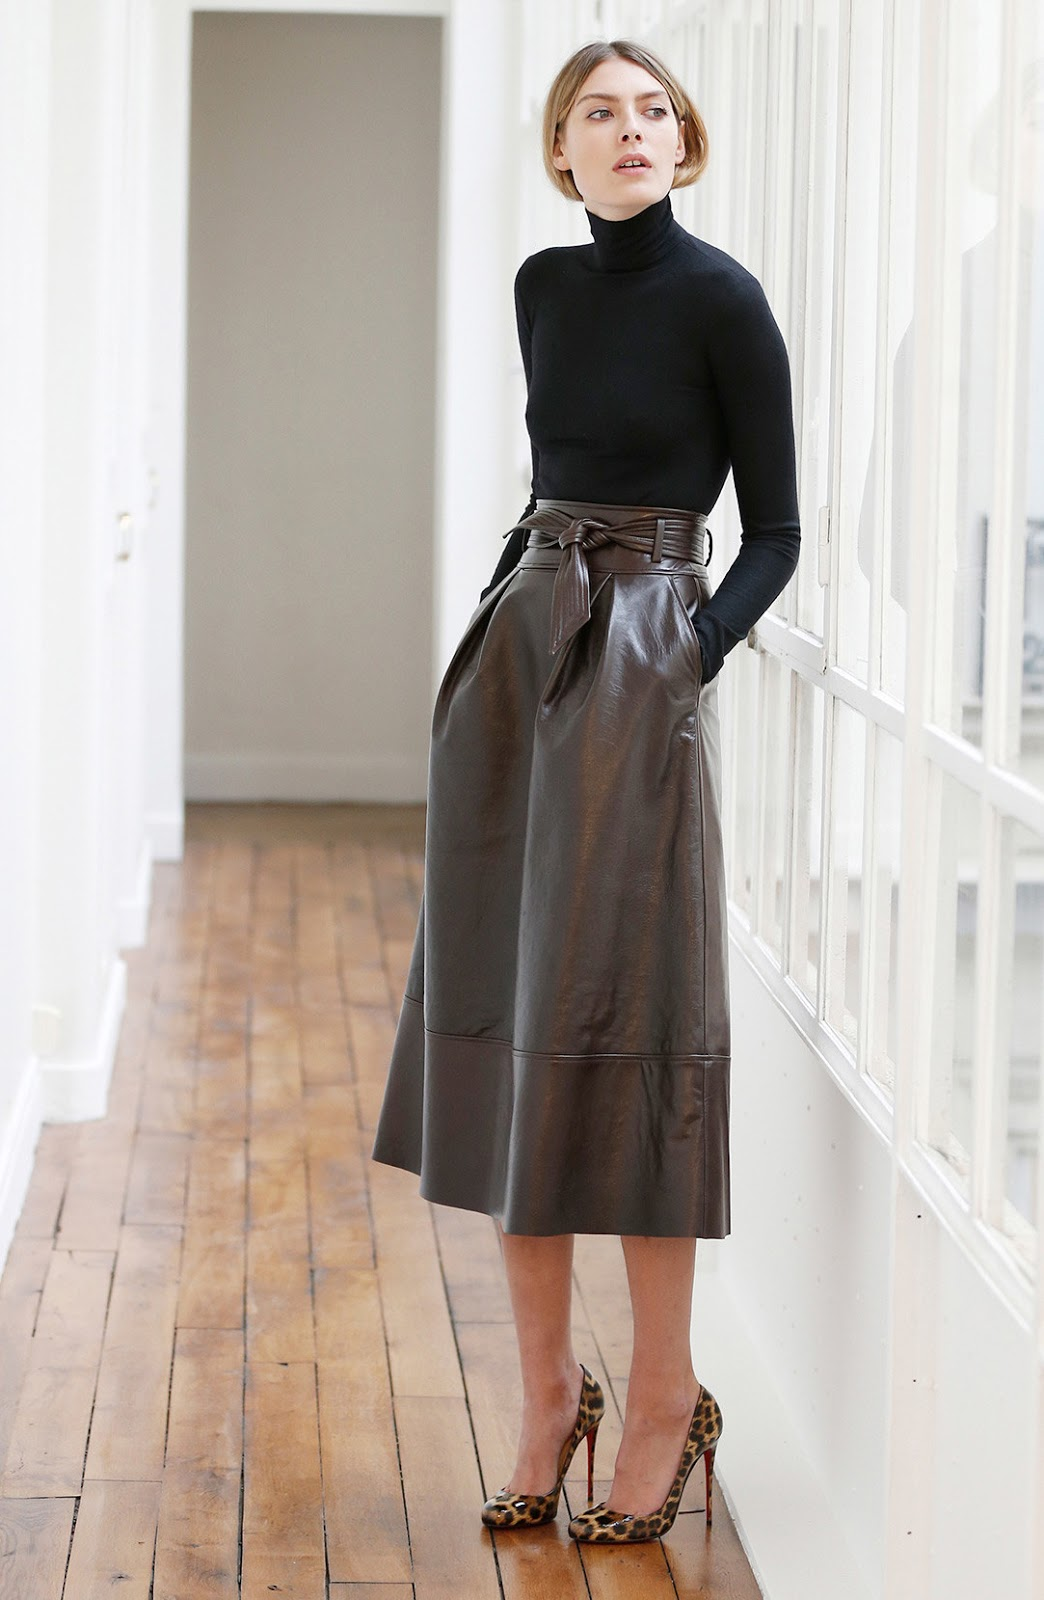 A designer look for less outfit inspired by martin grant pre-fall 2015 collection and parisian style featuring leather midi skirt, turtle neck and animal print pumps.